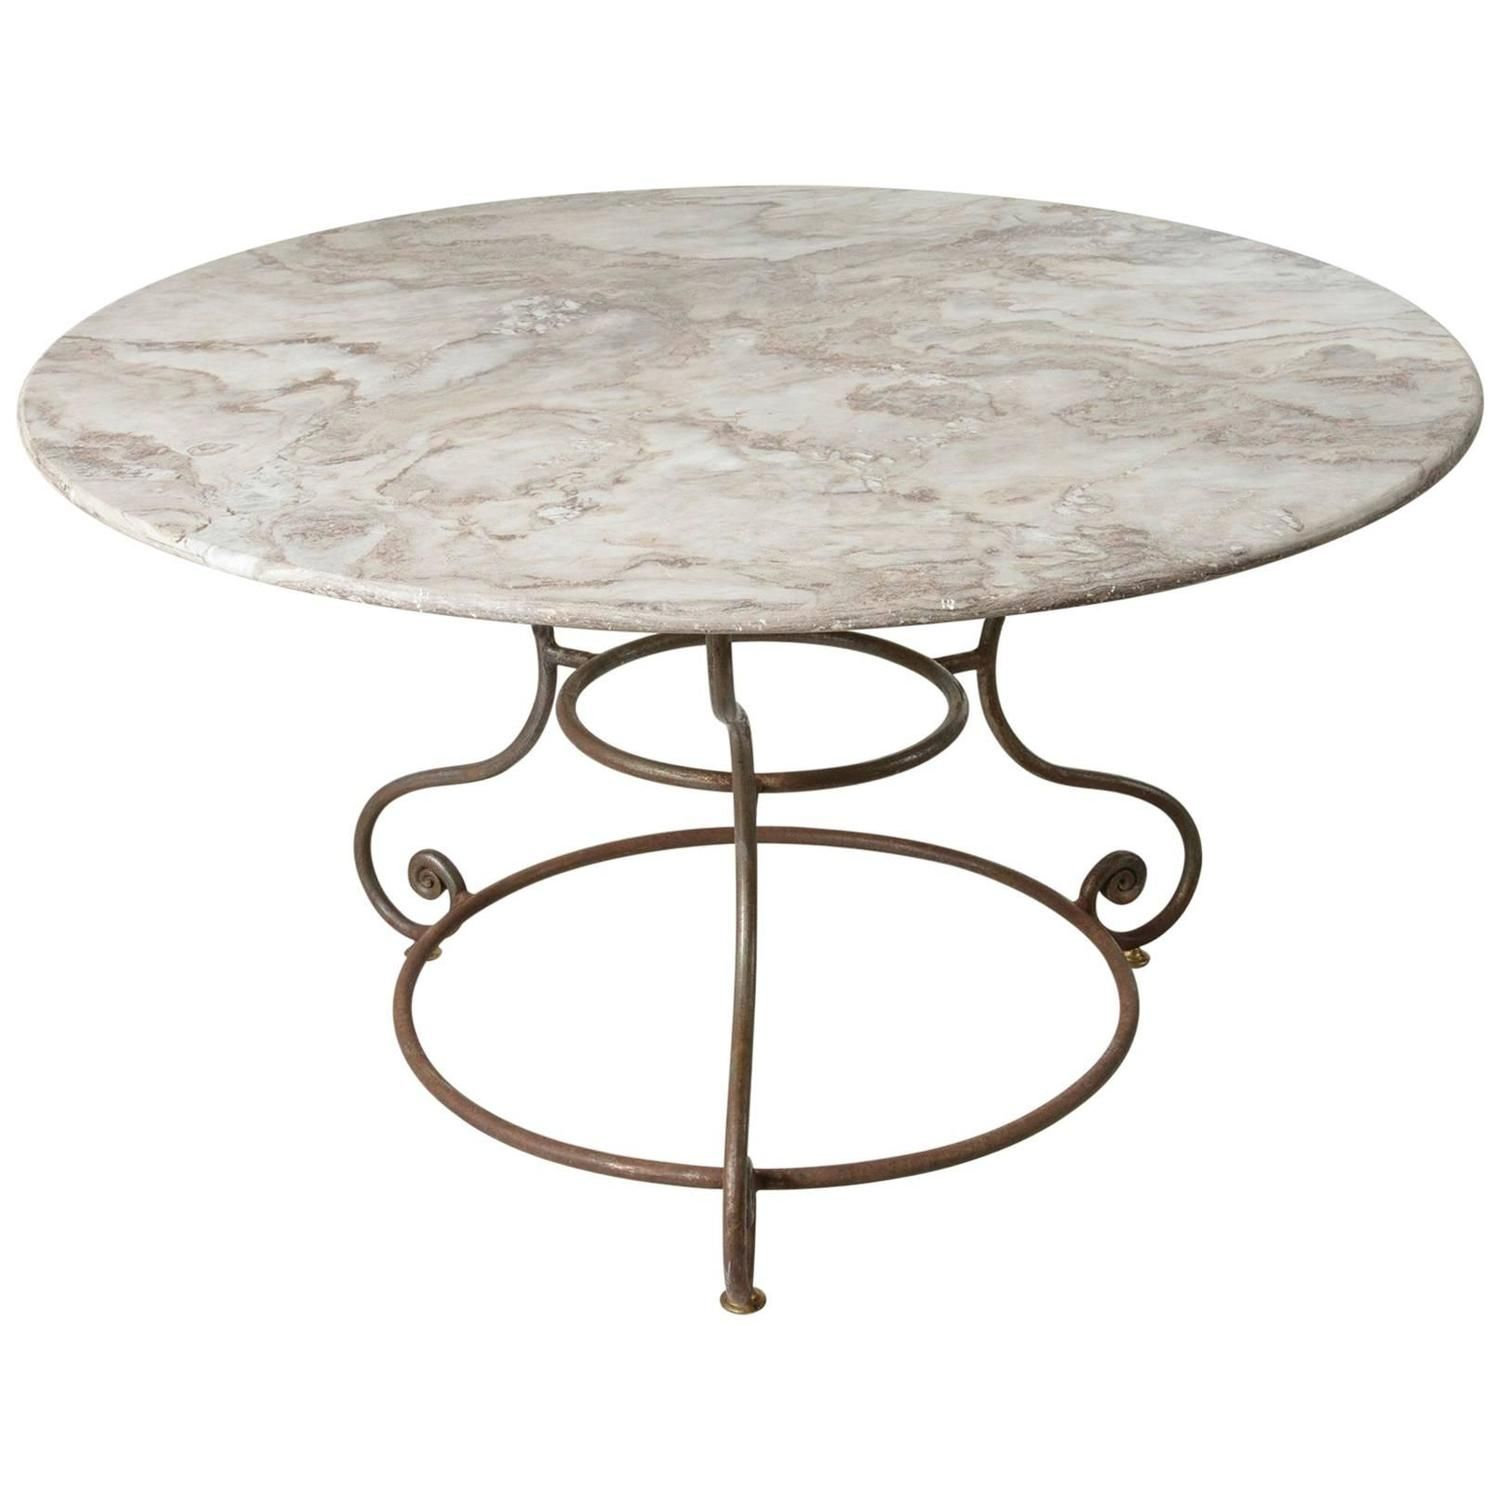 French Large Round Iron Base Garden Table with Exceptional ...